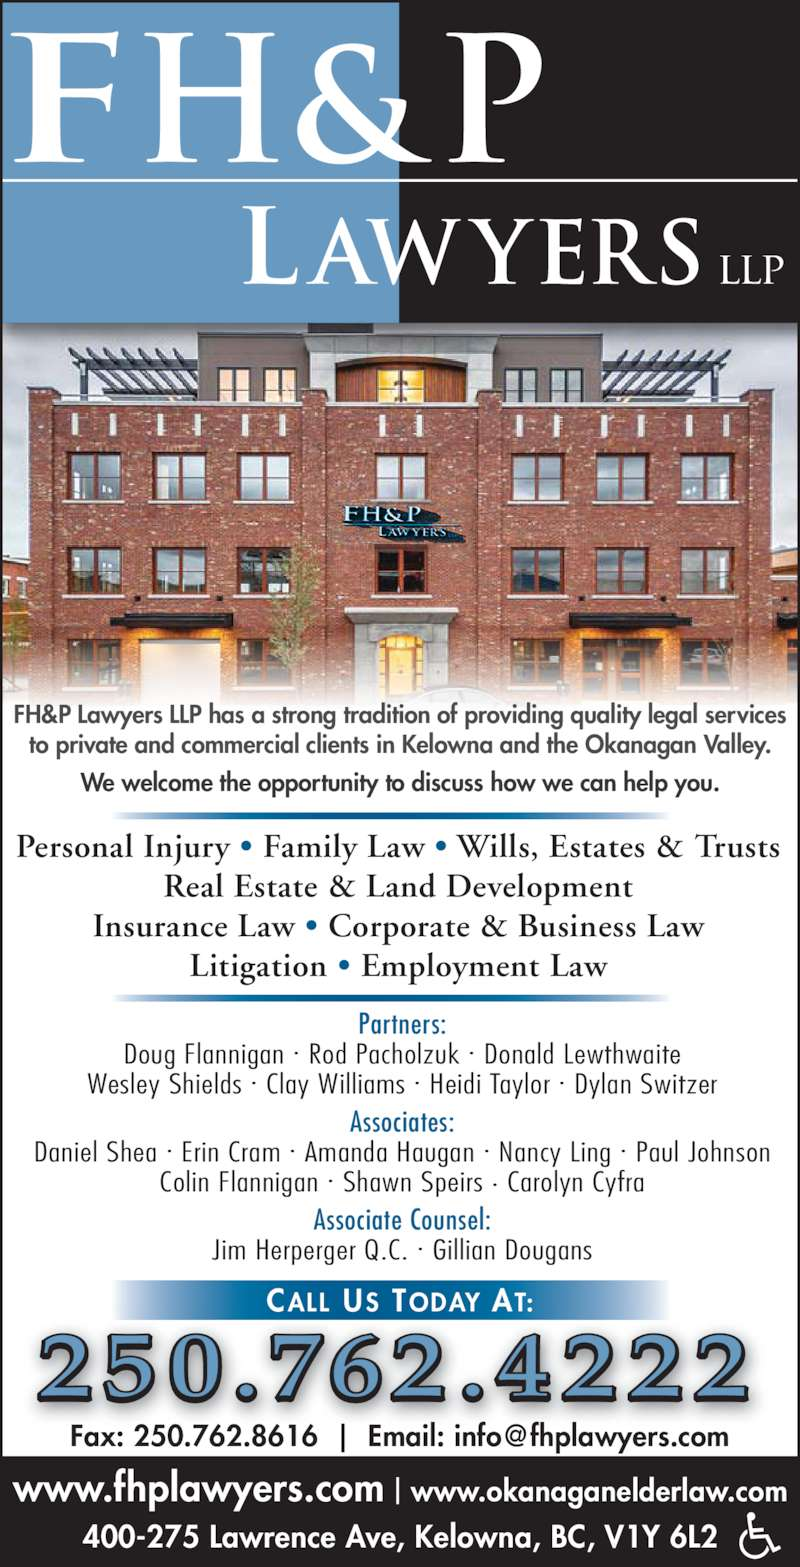 FH&P Lawyers LLP (250-762-4222) - Display Ad - 400-275 Lawrence Ave, Kelowna, BC, V1Y 6L2 CALL US TODAY AT: FH&P Lawyers LLP has a strong tradition of providing quality legal services to private and commercial clients in Kelowna and the Okanagan Valley. We welcome the opportunity to discuss how we can help you. Personal Injury ? Family Law ? Wills, Estates & Trusts Real Estate & Land Development Insurance Law ? Corporate & Business Law Litigation ? Employment Law 2 50 .762 .4 2 2 2 Partners: Doug Flannigan ? Rod Pacholzuk ? Donald Lewthwaite Wesley Shields ? Clay Williams ? Heidi Taylor ? Dylan Switzer Associates: www.fhplawyers.com | www.okanaganelderlaw.com Daniel Shea ? Erin Cram ? Amanda Haugan ? Nancy Ling ? Paul Johnson Colin Flannigan ? Shawn Speirs ? Carolyn Cyfra Associate Counsel: Jim Herperger Q.C. ? Gillian Dougans